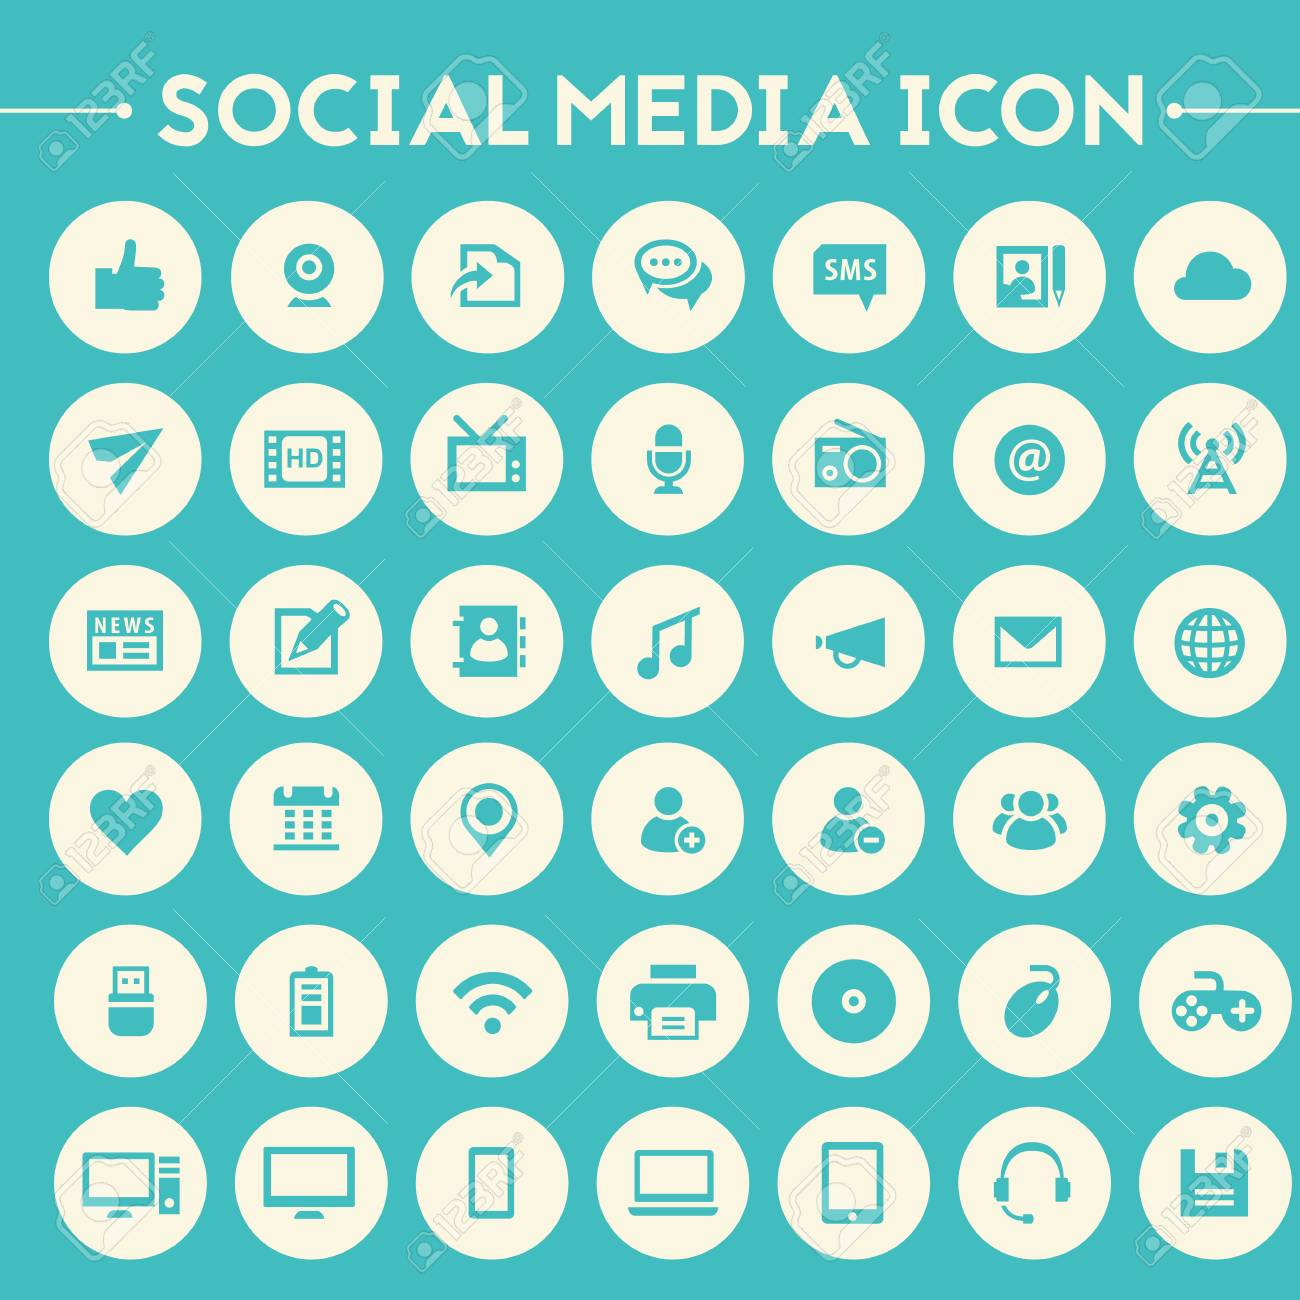 Trendy Flat Design Big Social Media Icons Set On Bright Round Royalty Free Cliparts Vectors And Stock Illustration Image 61449060